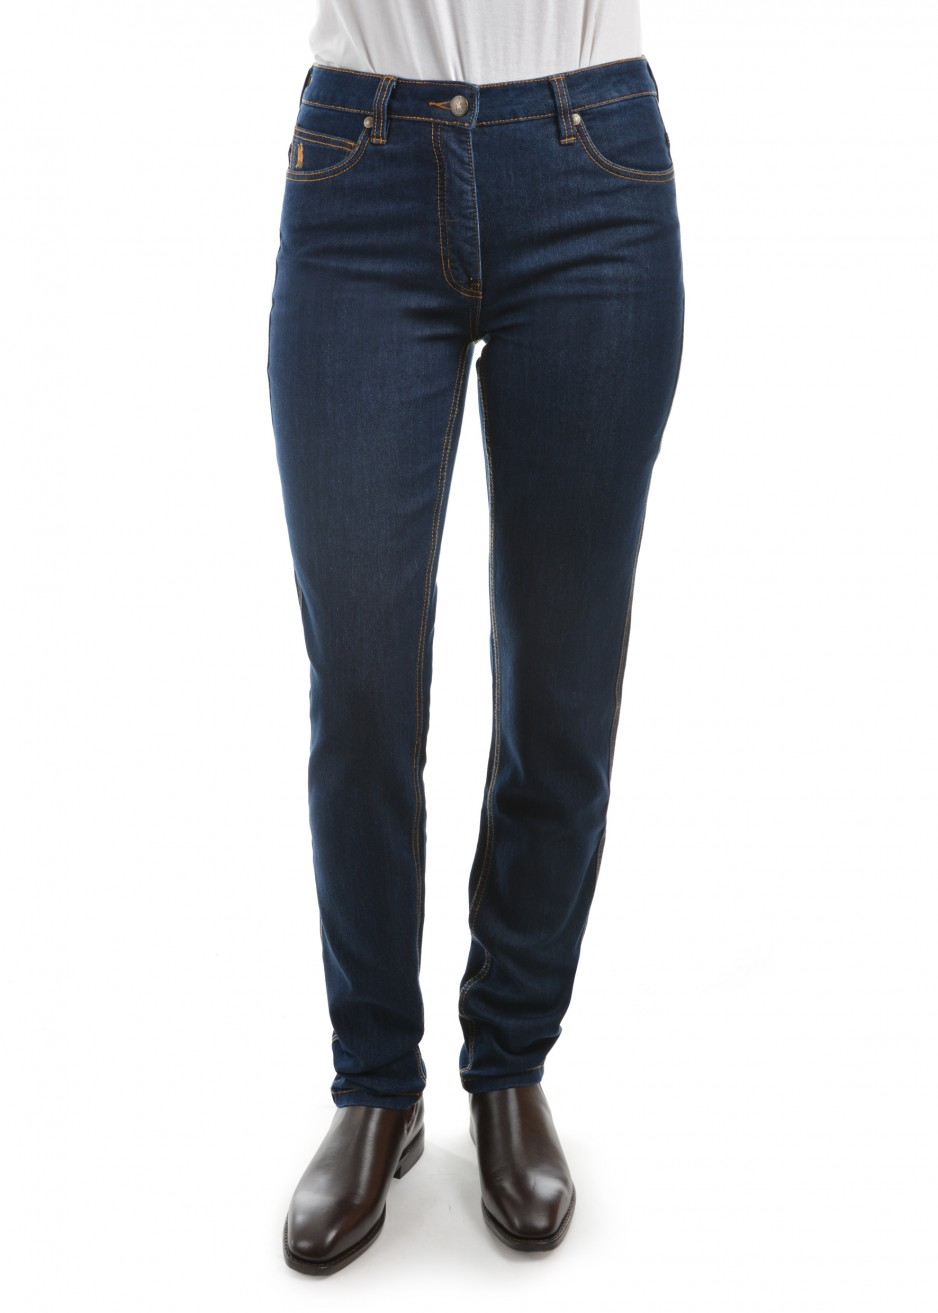 WOMENS STRETCH DENIM WONDER JEAN SLIM LEG 34